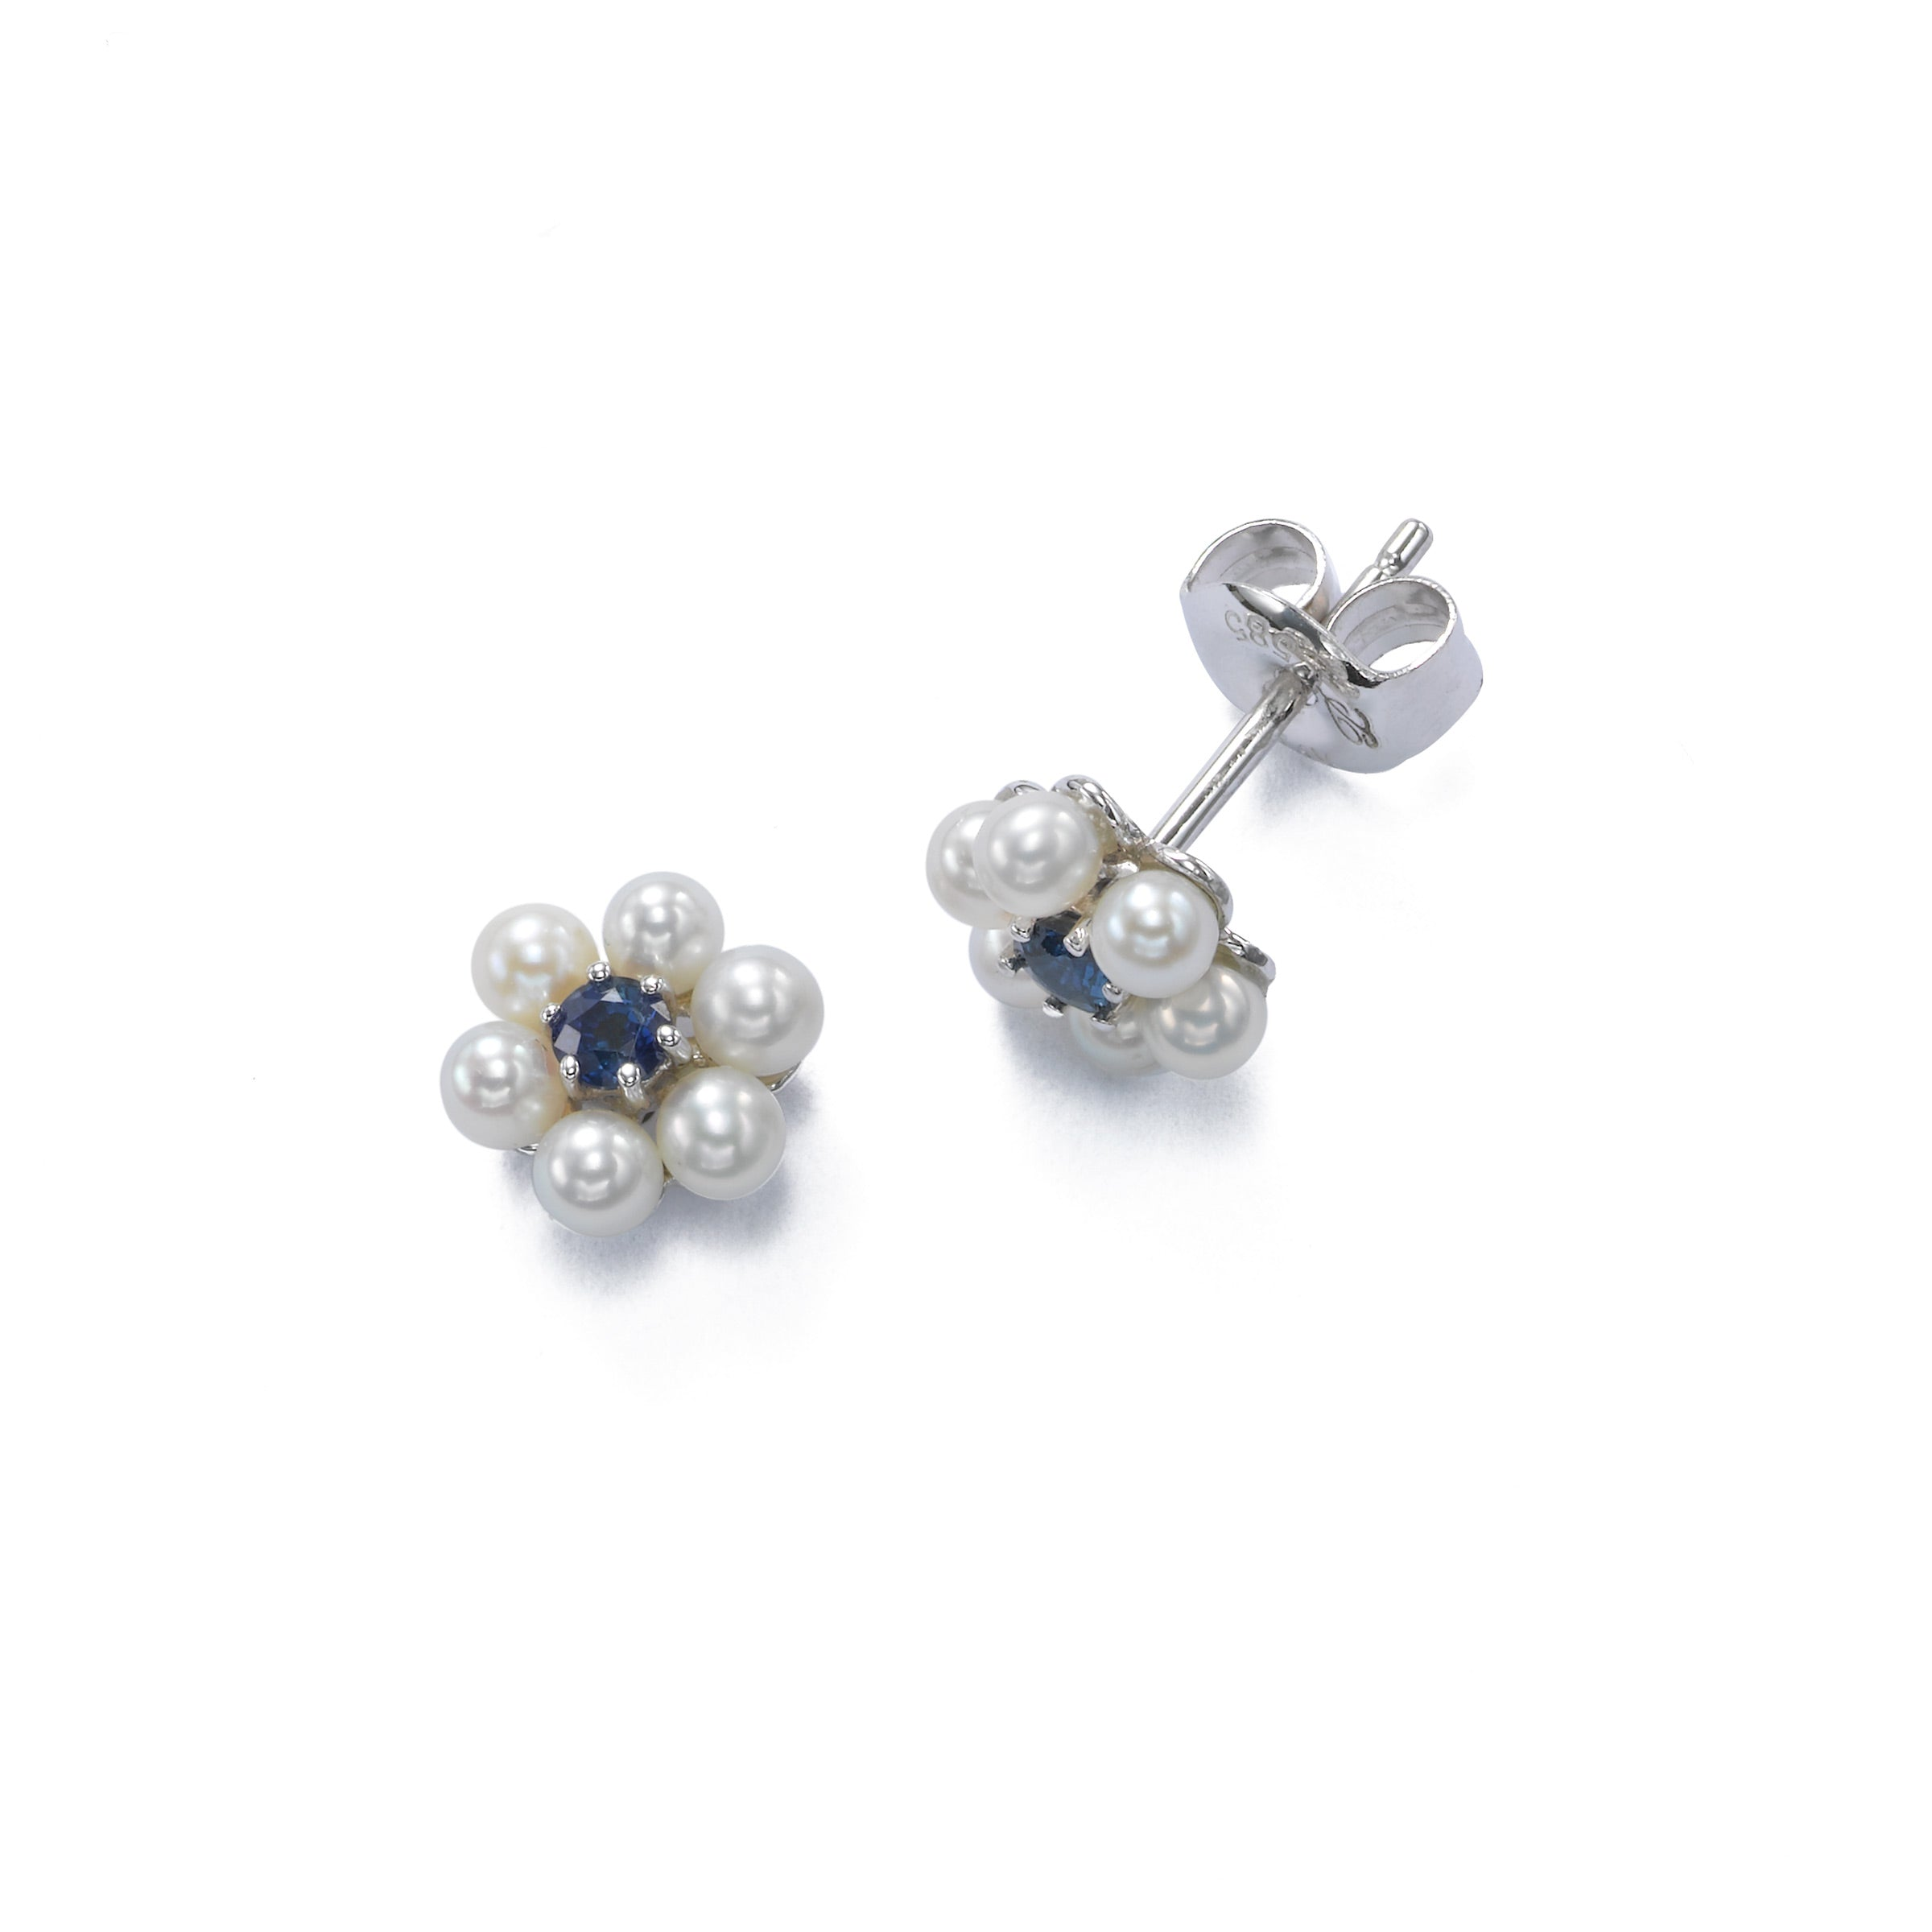 Petite Pearl With Sapphire Flower Earrings, 14K White Gold